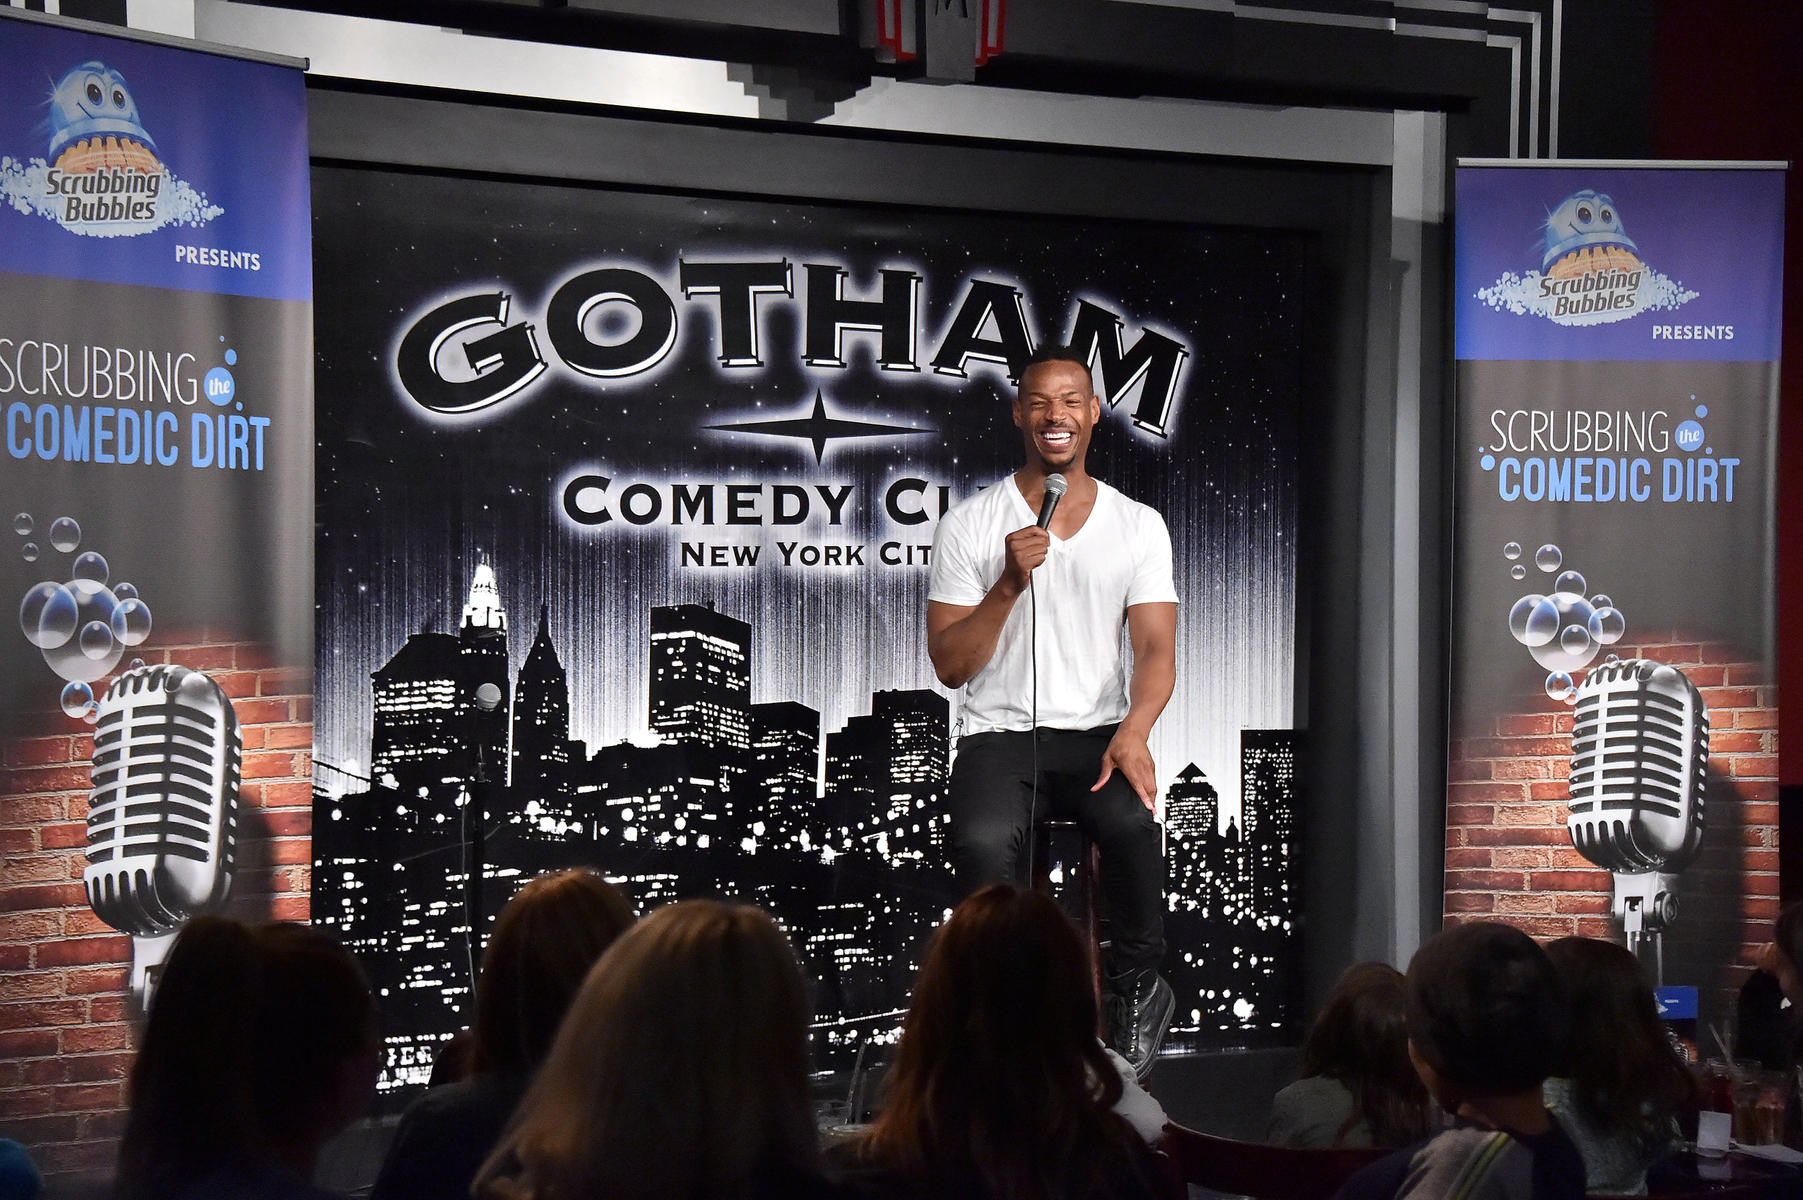 Wayans recently performed a kid-friendly comedy show as part of Scrubbing the Comedic Dirt comedy show presented by Scrubbing Bubbles.